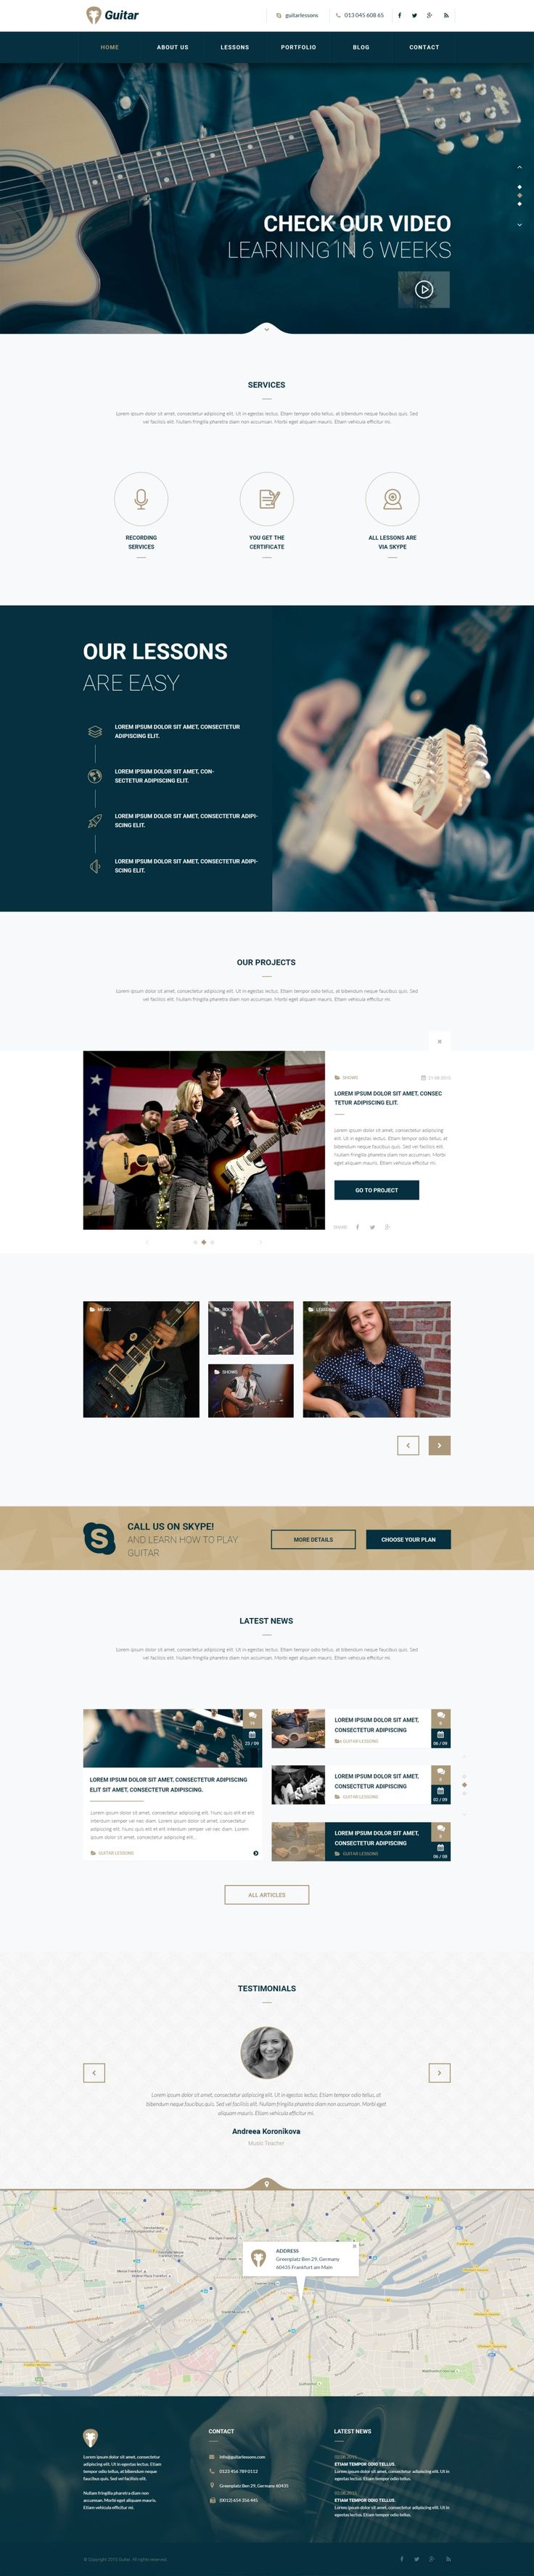 Guitar School Educational Music PSD Is A Very Clean And Modern Designed Find This Pin More On Corporate Website Design Inspiration